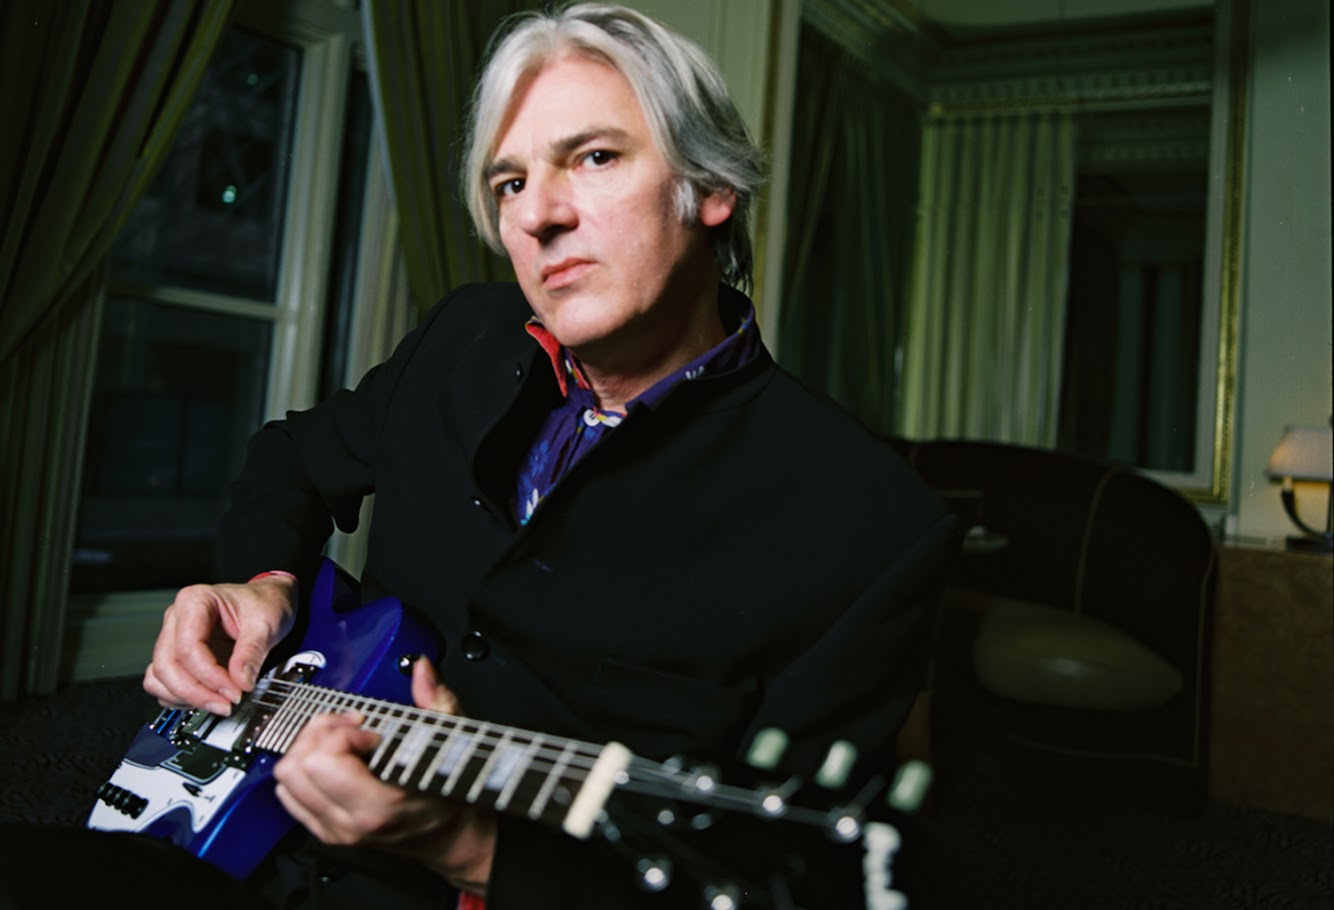 Robyn Hitchcock will play at the Stoughton Opera House on November 18. Photo by Alicia J. Rose.